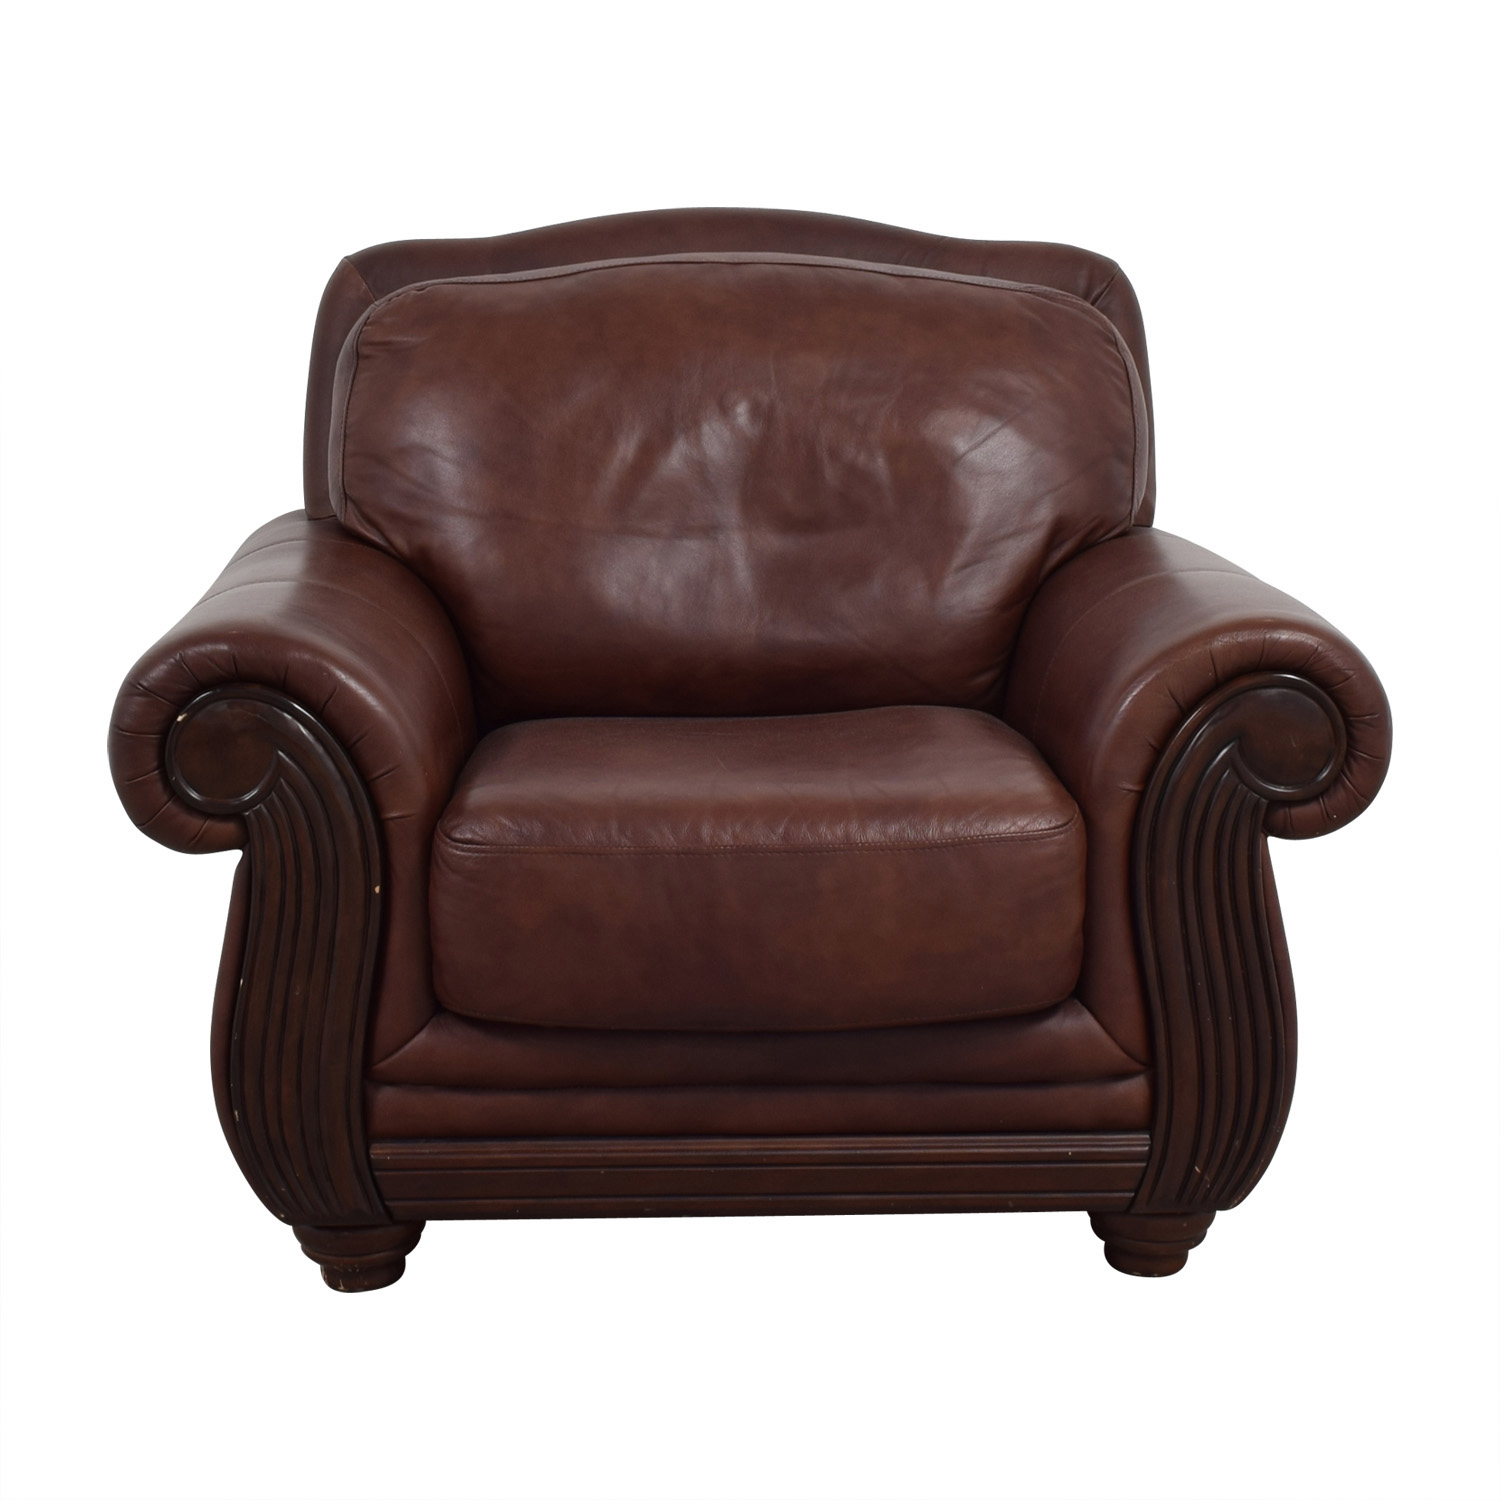 Go Chair 69 Off Rooms To Go Rooms To Go Brown Leather Accent